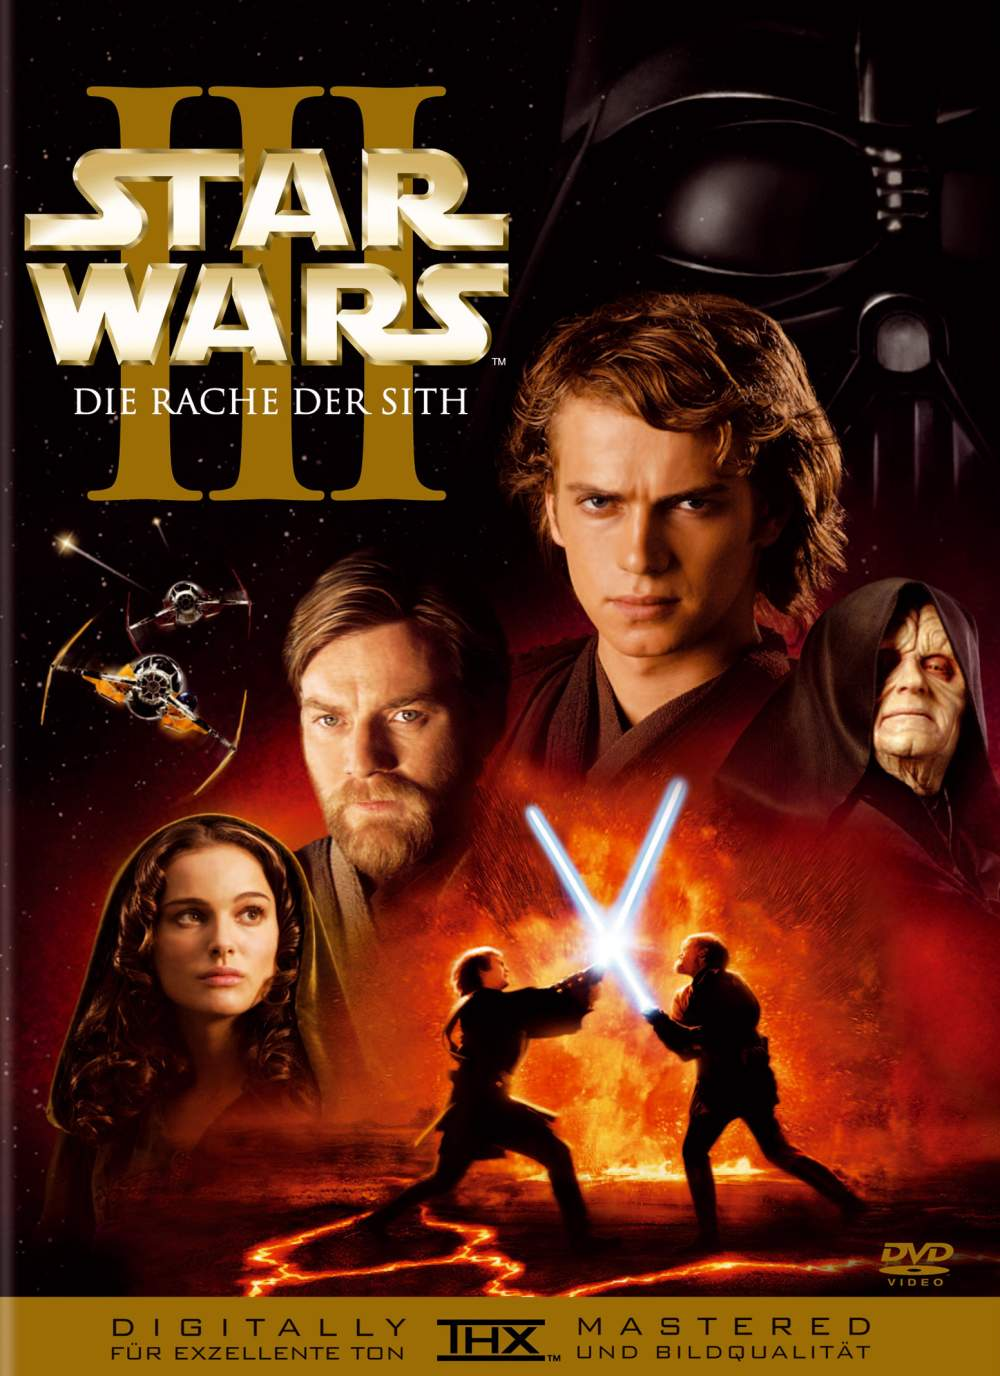 Star Wars 3 Deutsch Der Ganze Film